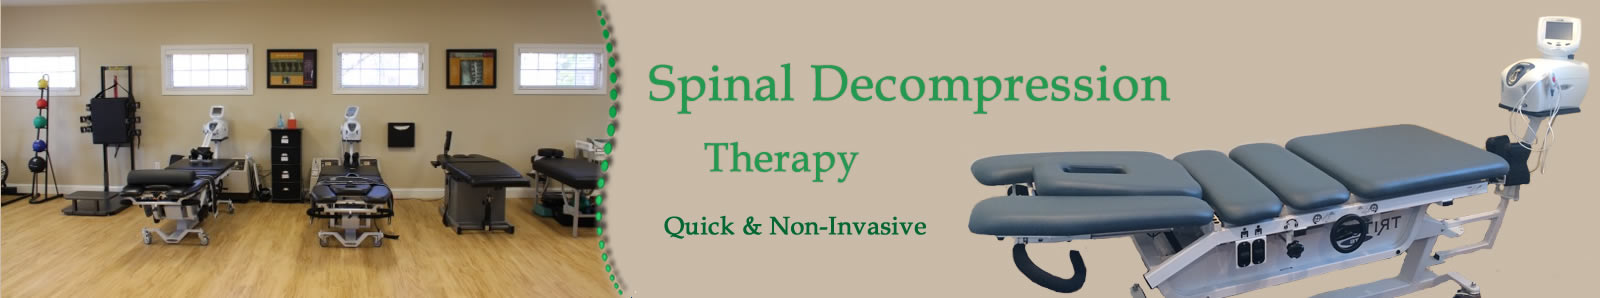 Spinal_Decompression_Header.jpg